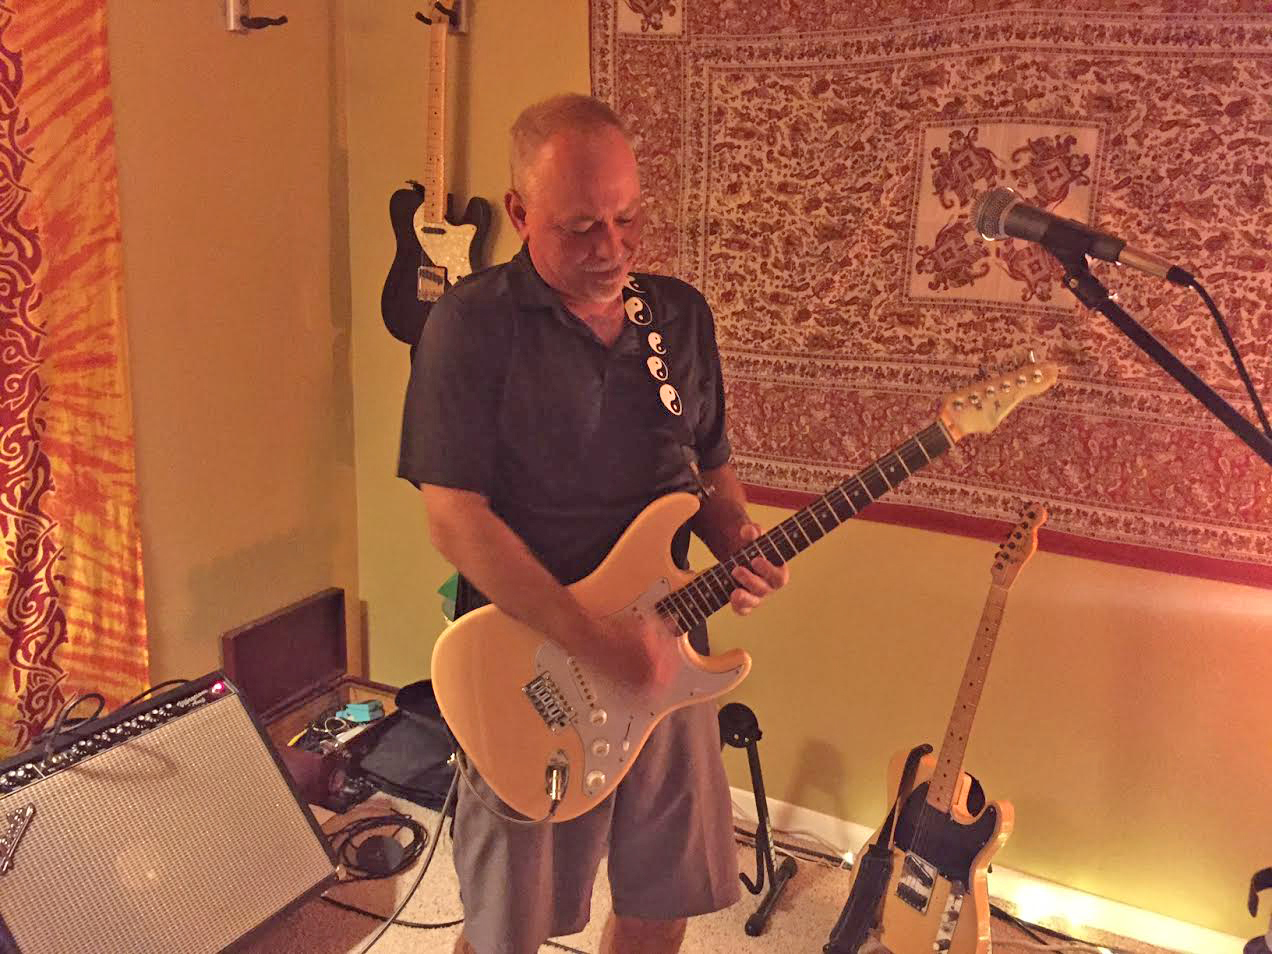 Mark Dybvig playing an Original Rdawg Cream Vintage Assembly guitar